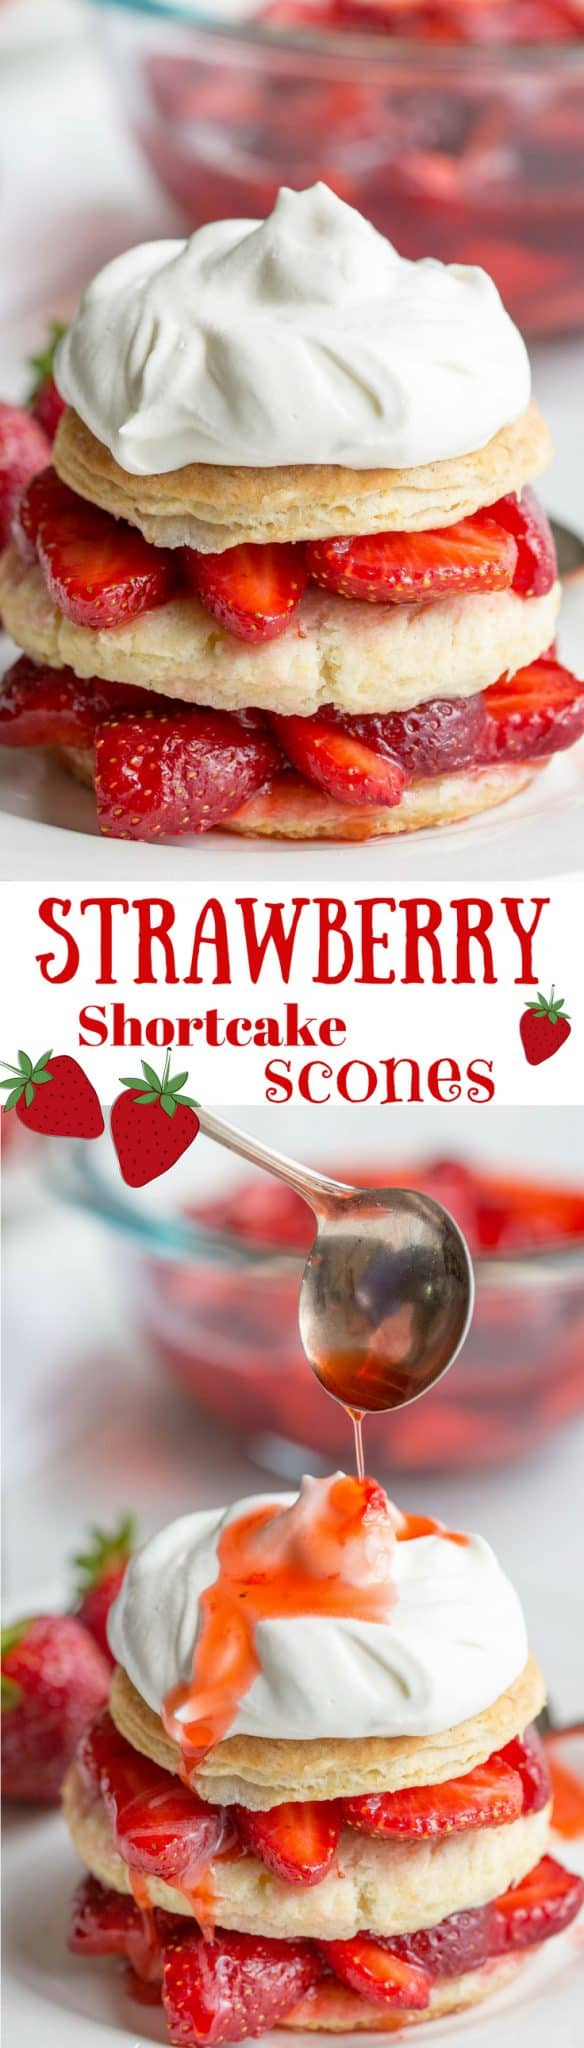 Strawberry Shortcake Scones-Sweet, ripe strawberries spooned between fluffy scone layers, then drizzled with the berry juices and topped with sweetened whipped cream - summer perfection! www.savingdessert.com